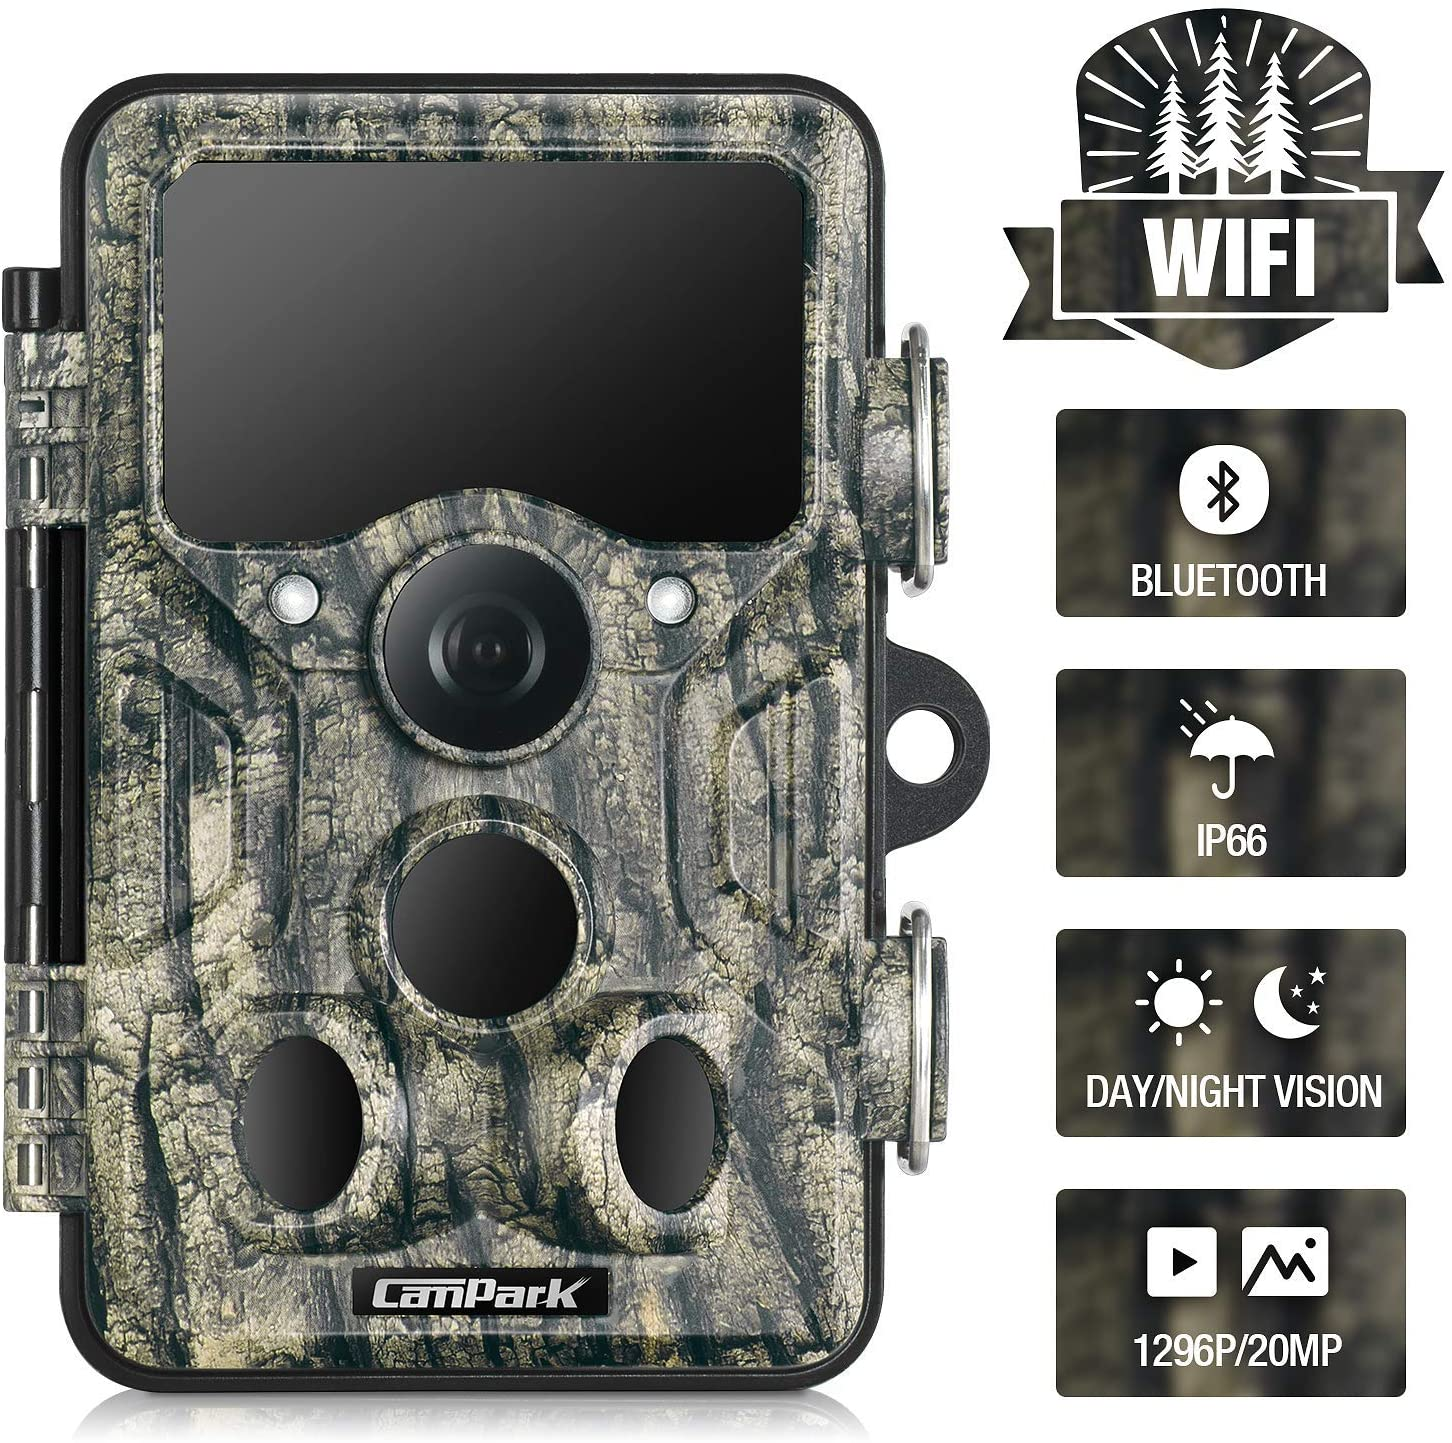 https://www.campark.net/products/campark-t86-wifi-bluetooth-trail-camera-20mp-1296p-game-hunting-camera?variant=32671771000935